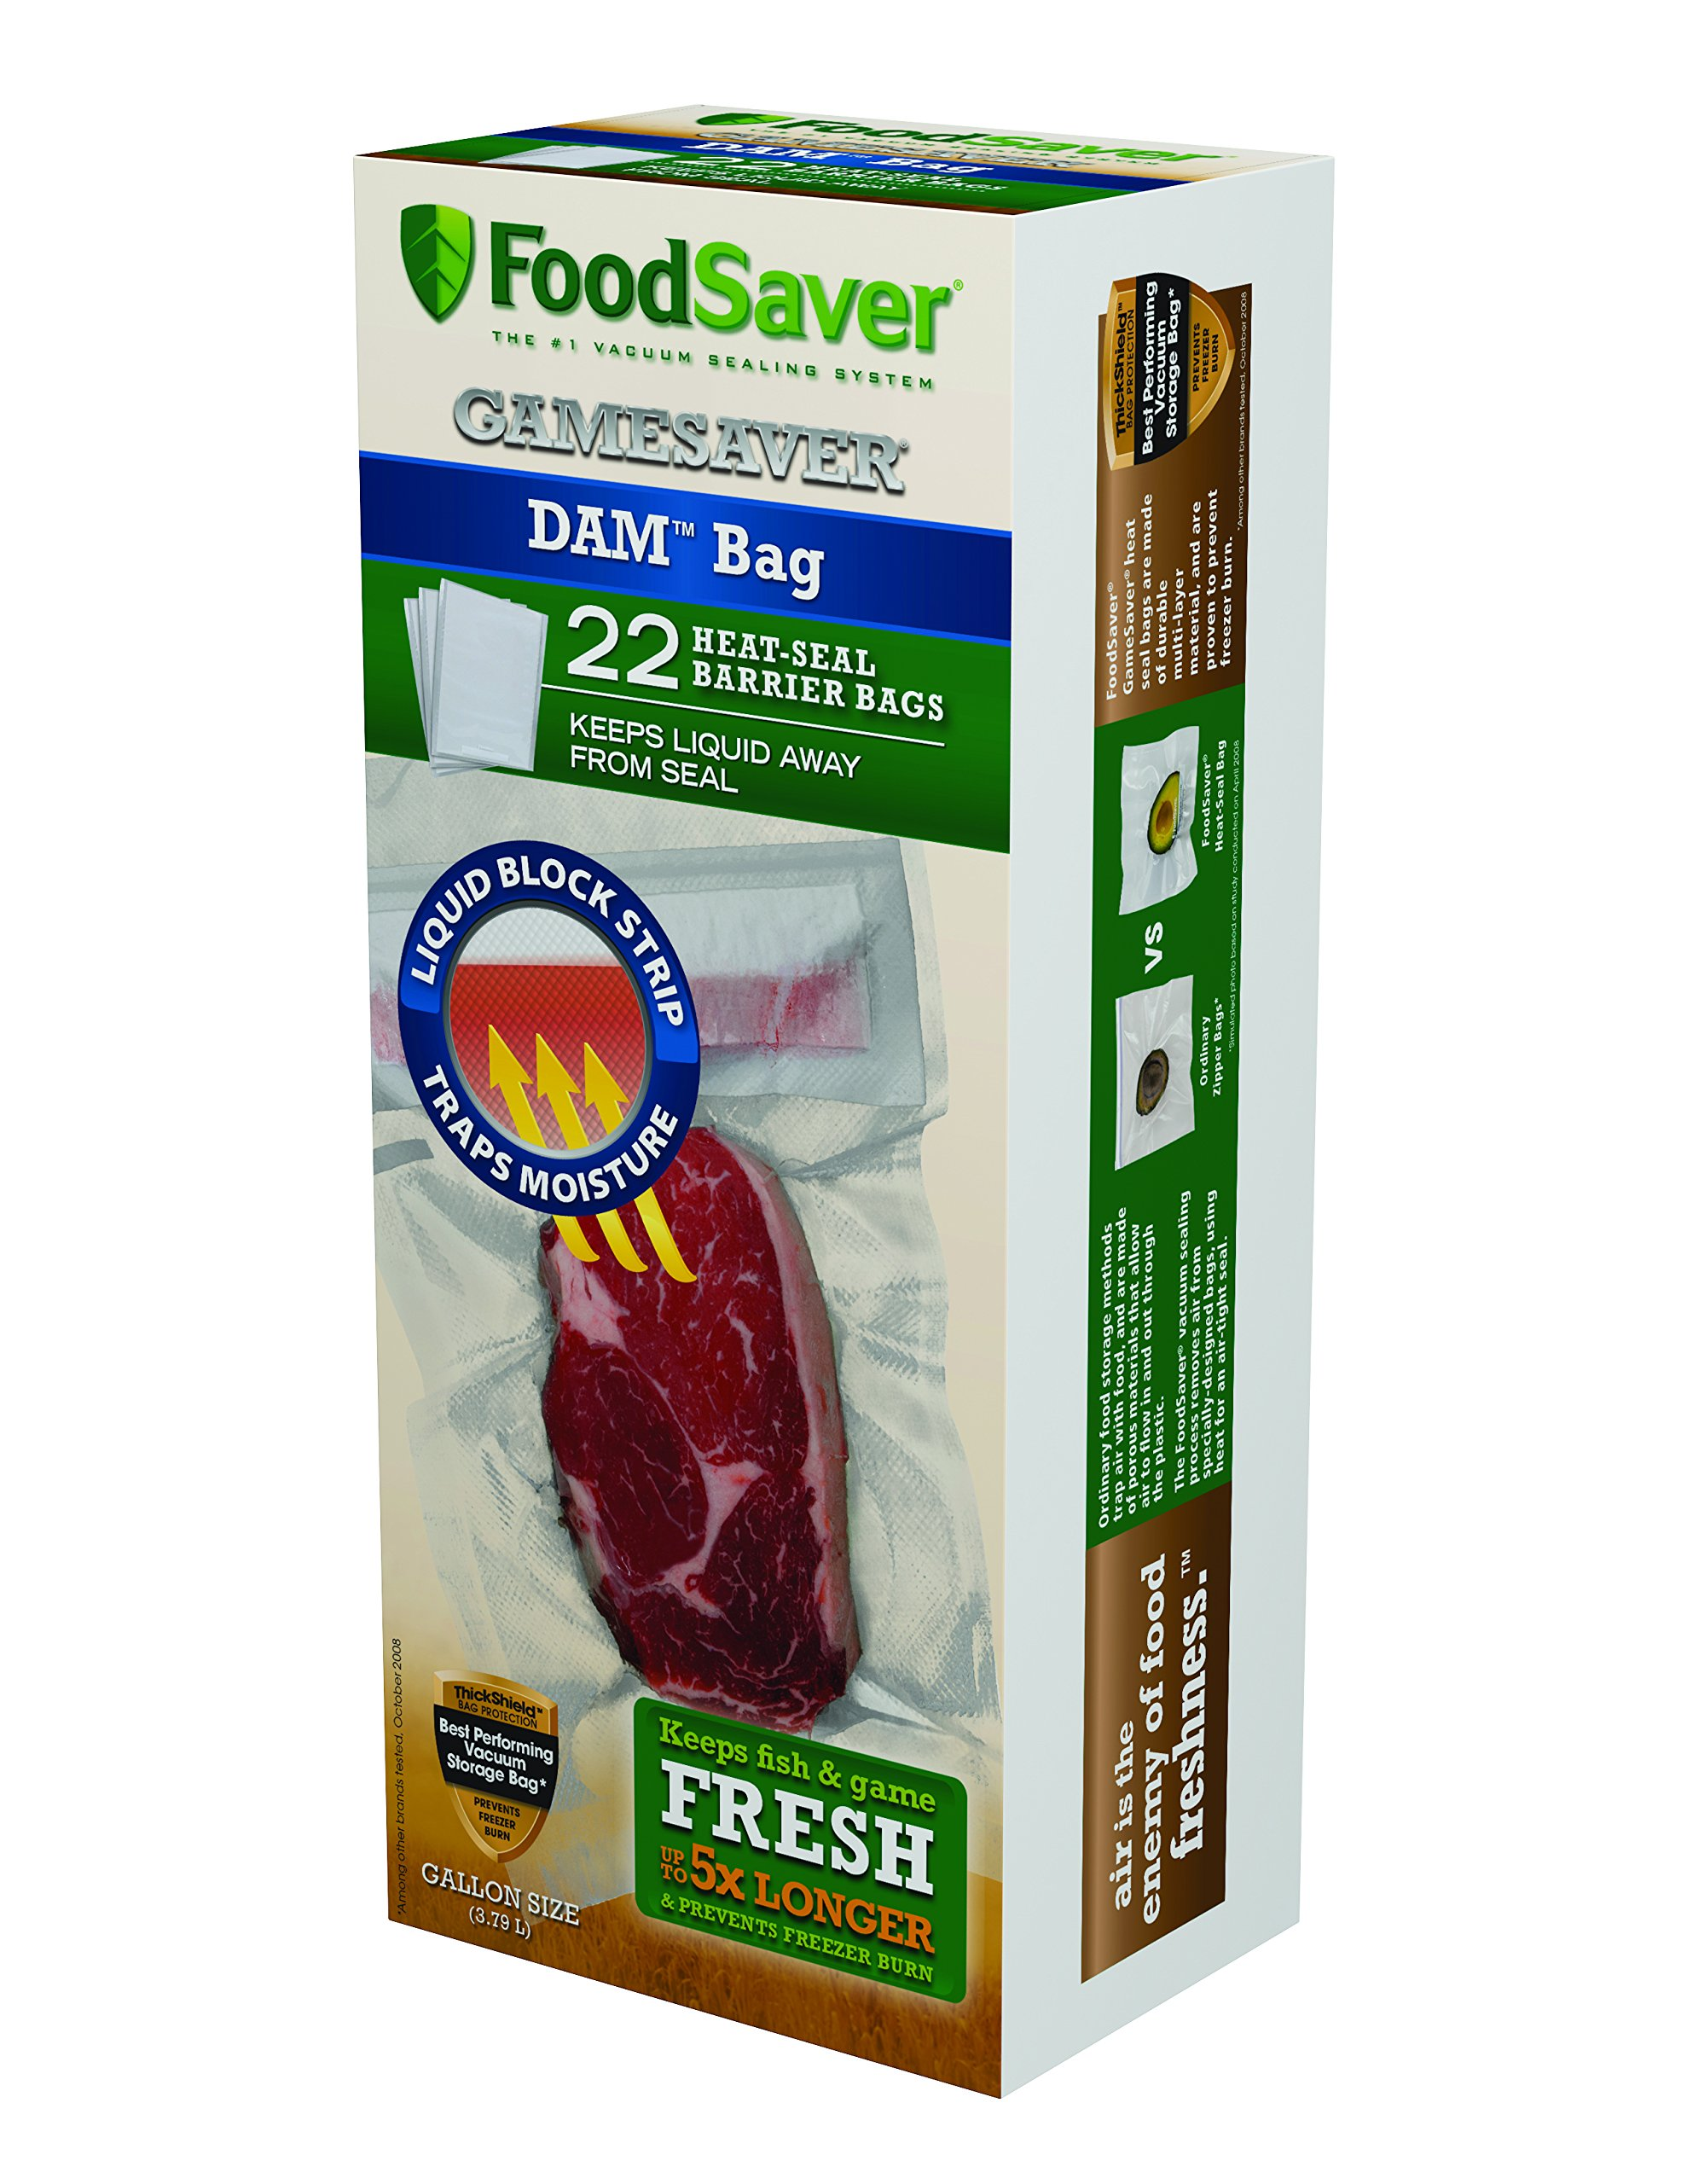 FoodSaver 1-Gallon DAM Bags, 22 Count